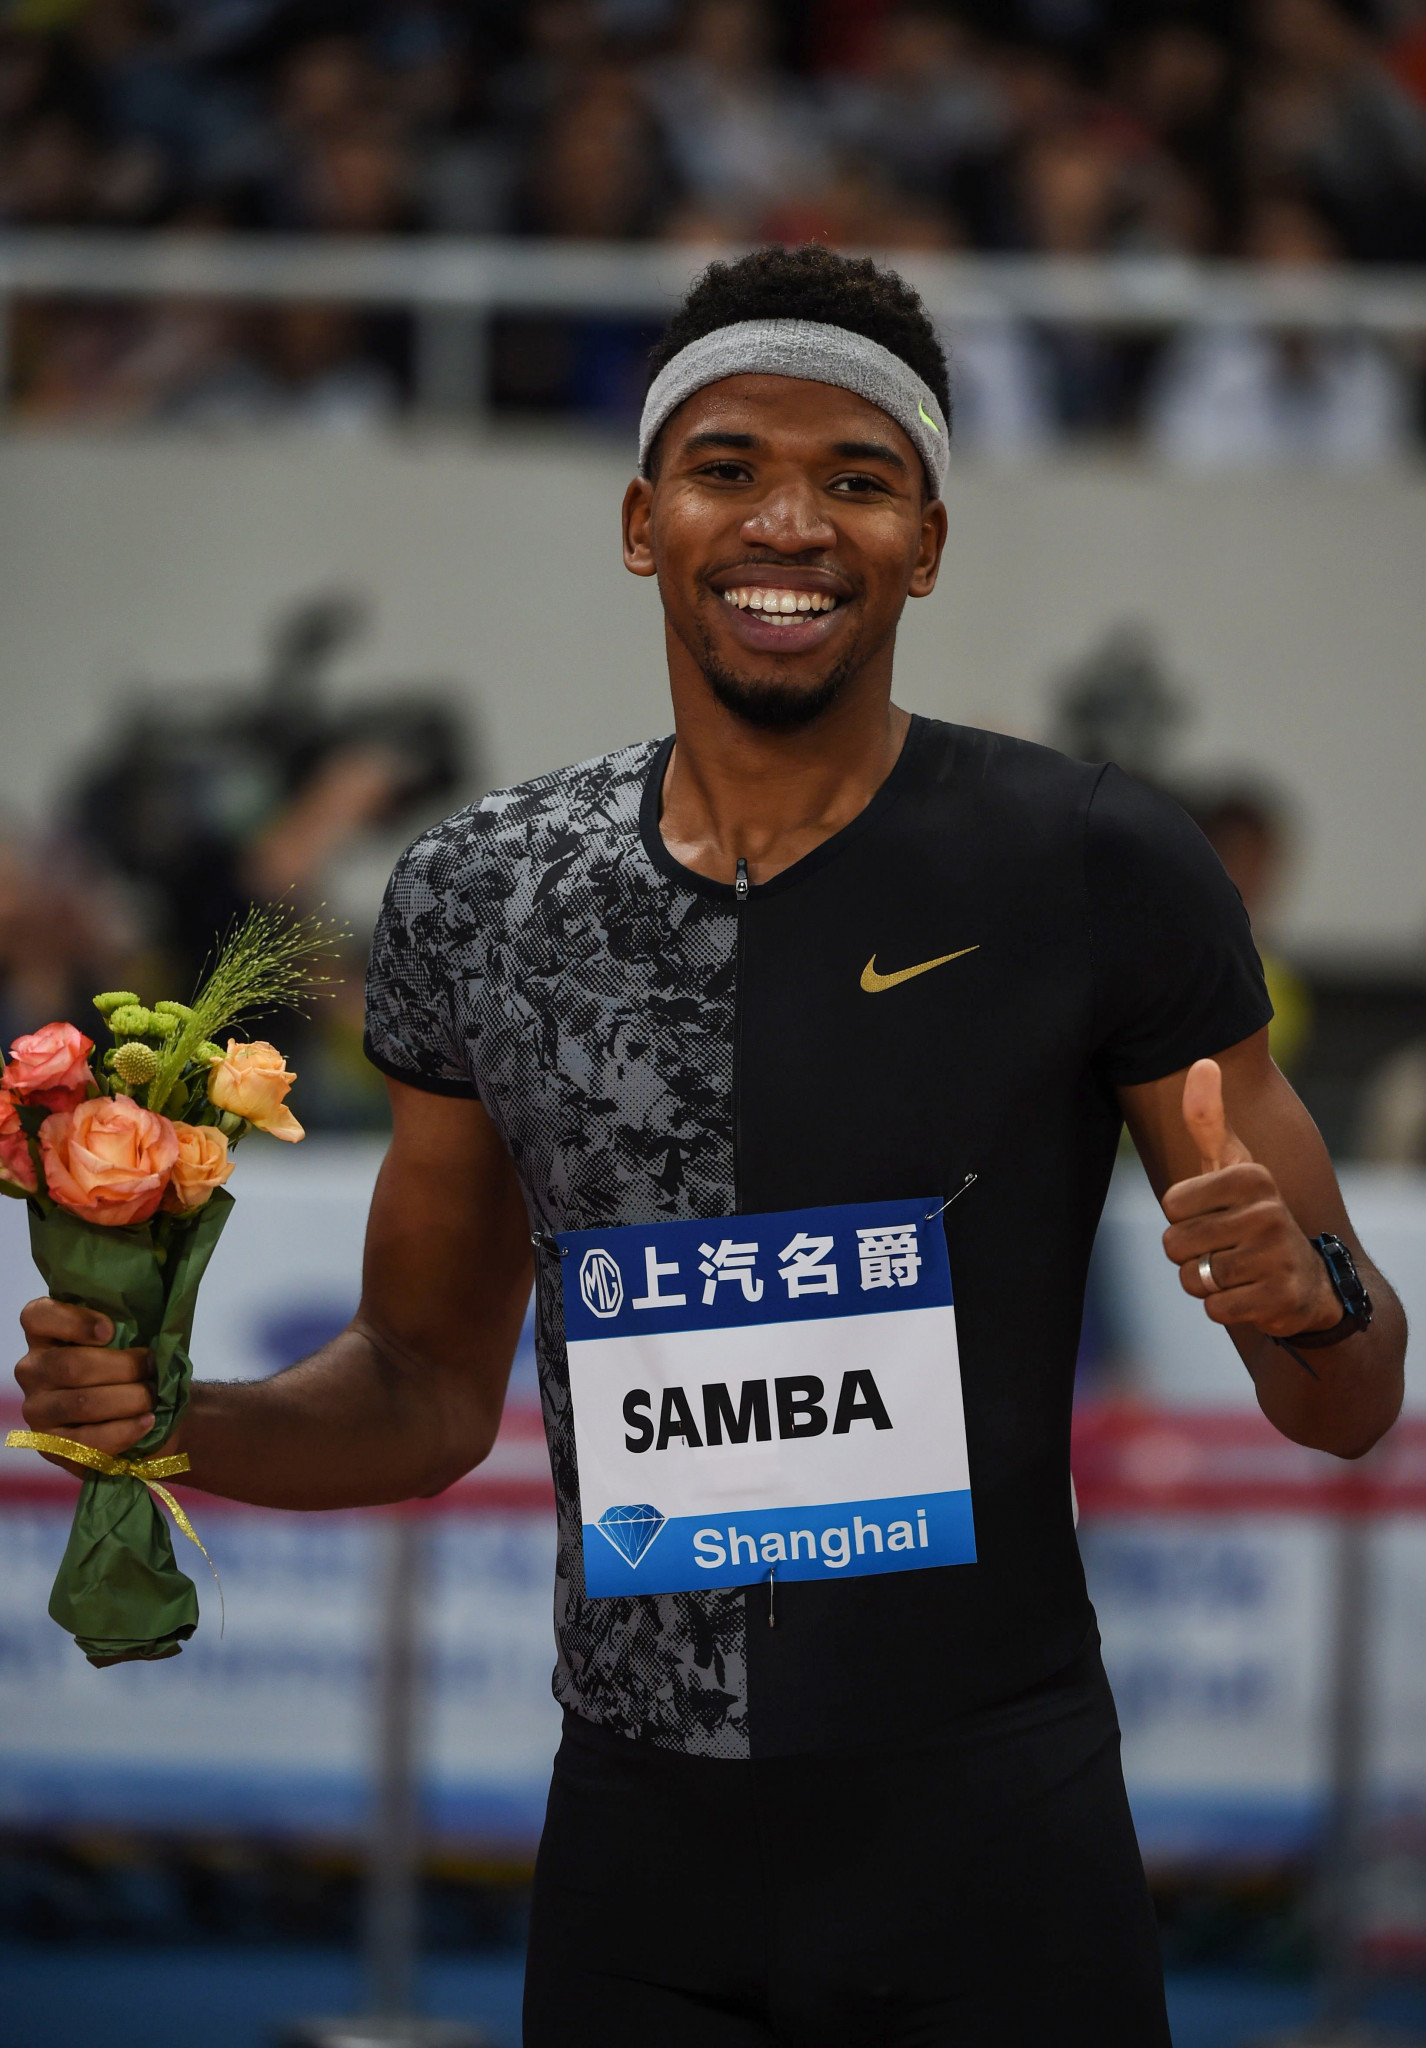 Samba wins first 400m hurdles meeting with Benjamin in Shanghai Diamond League